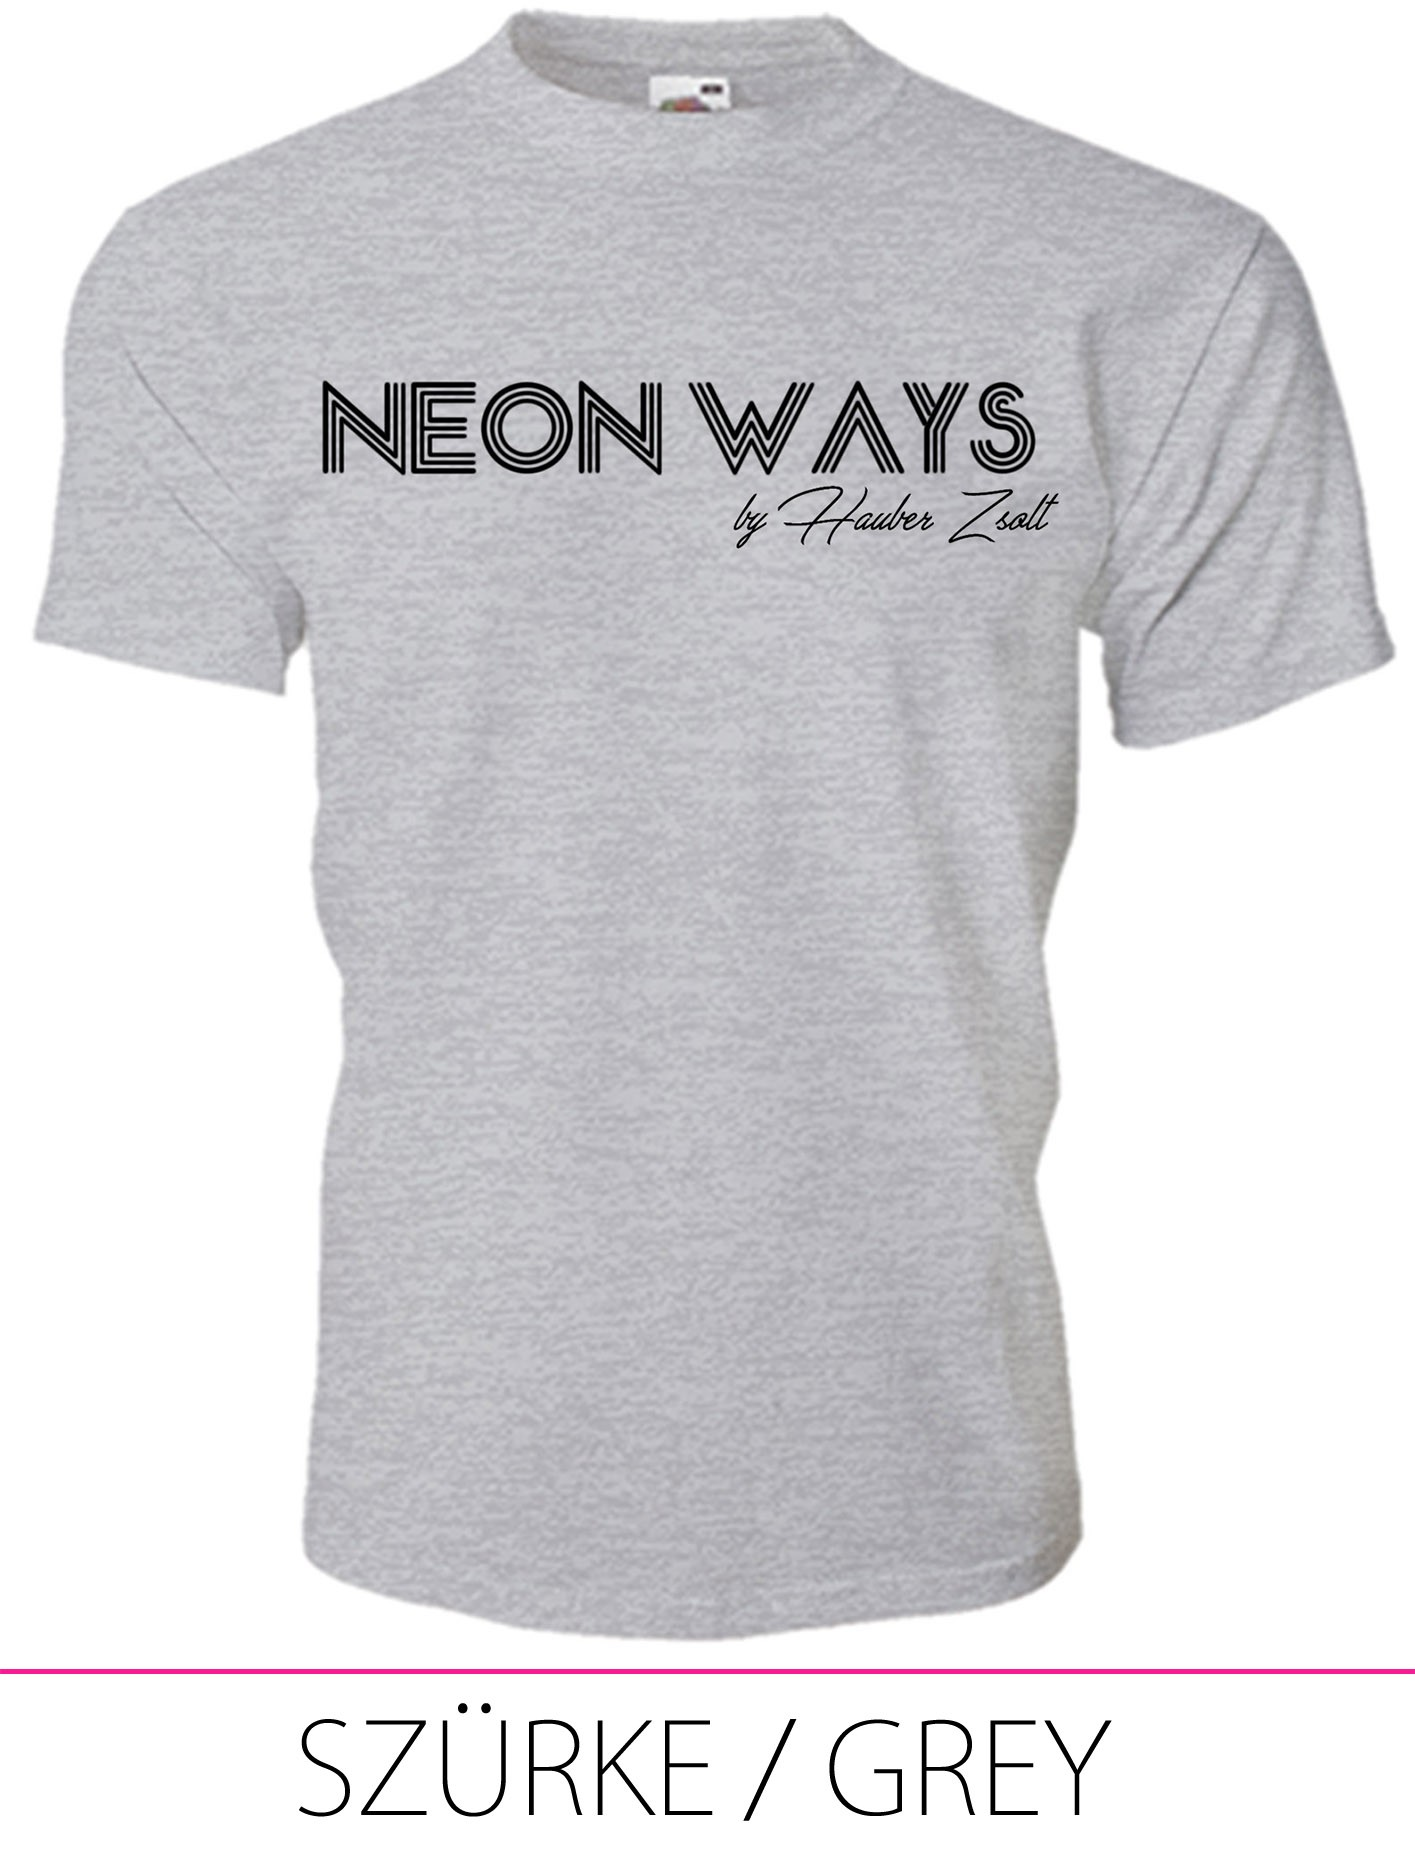 KIDS CREW NECK T-SHIRT NEON WAYS GREY